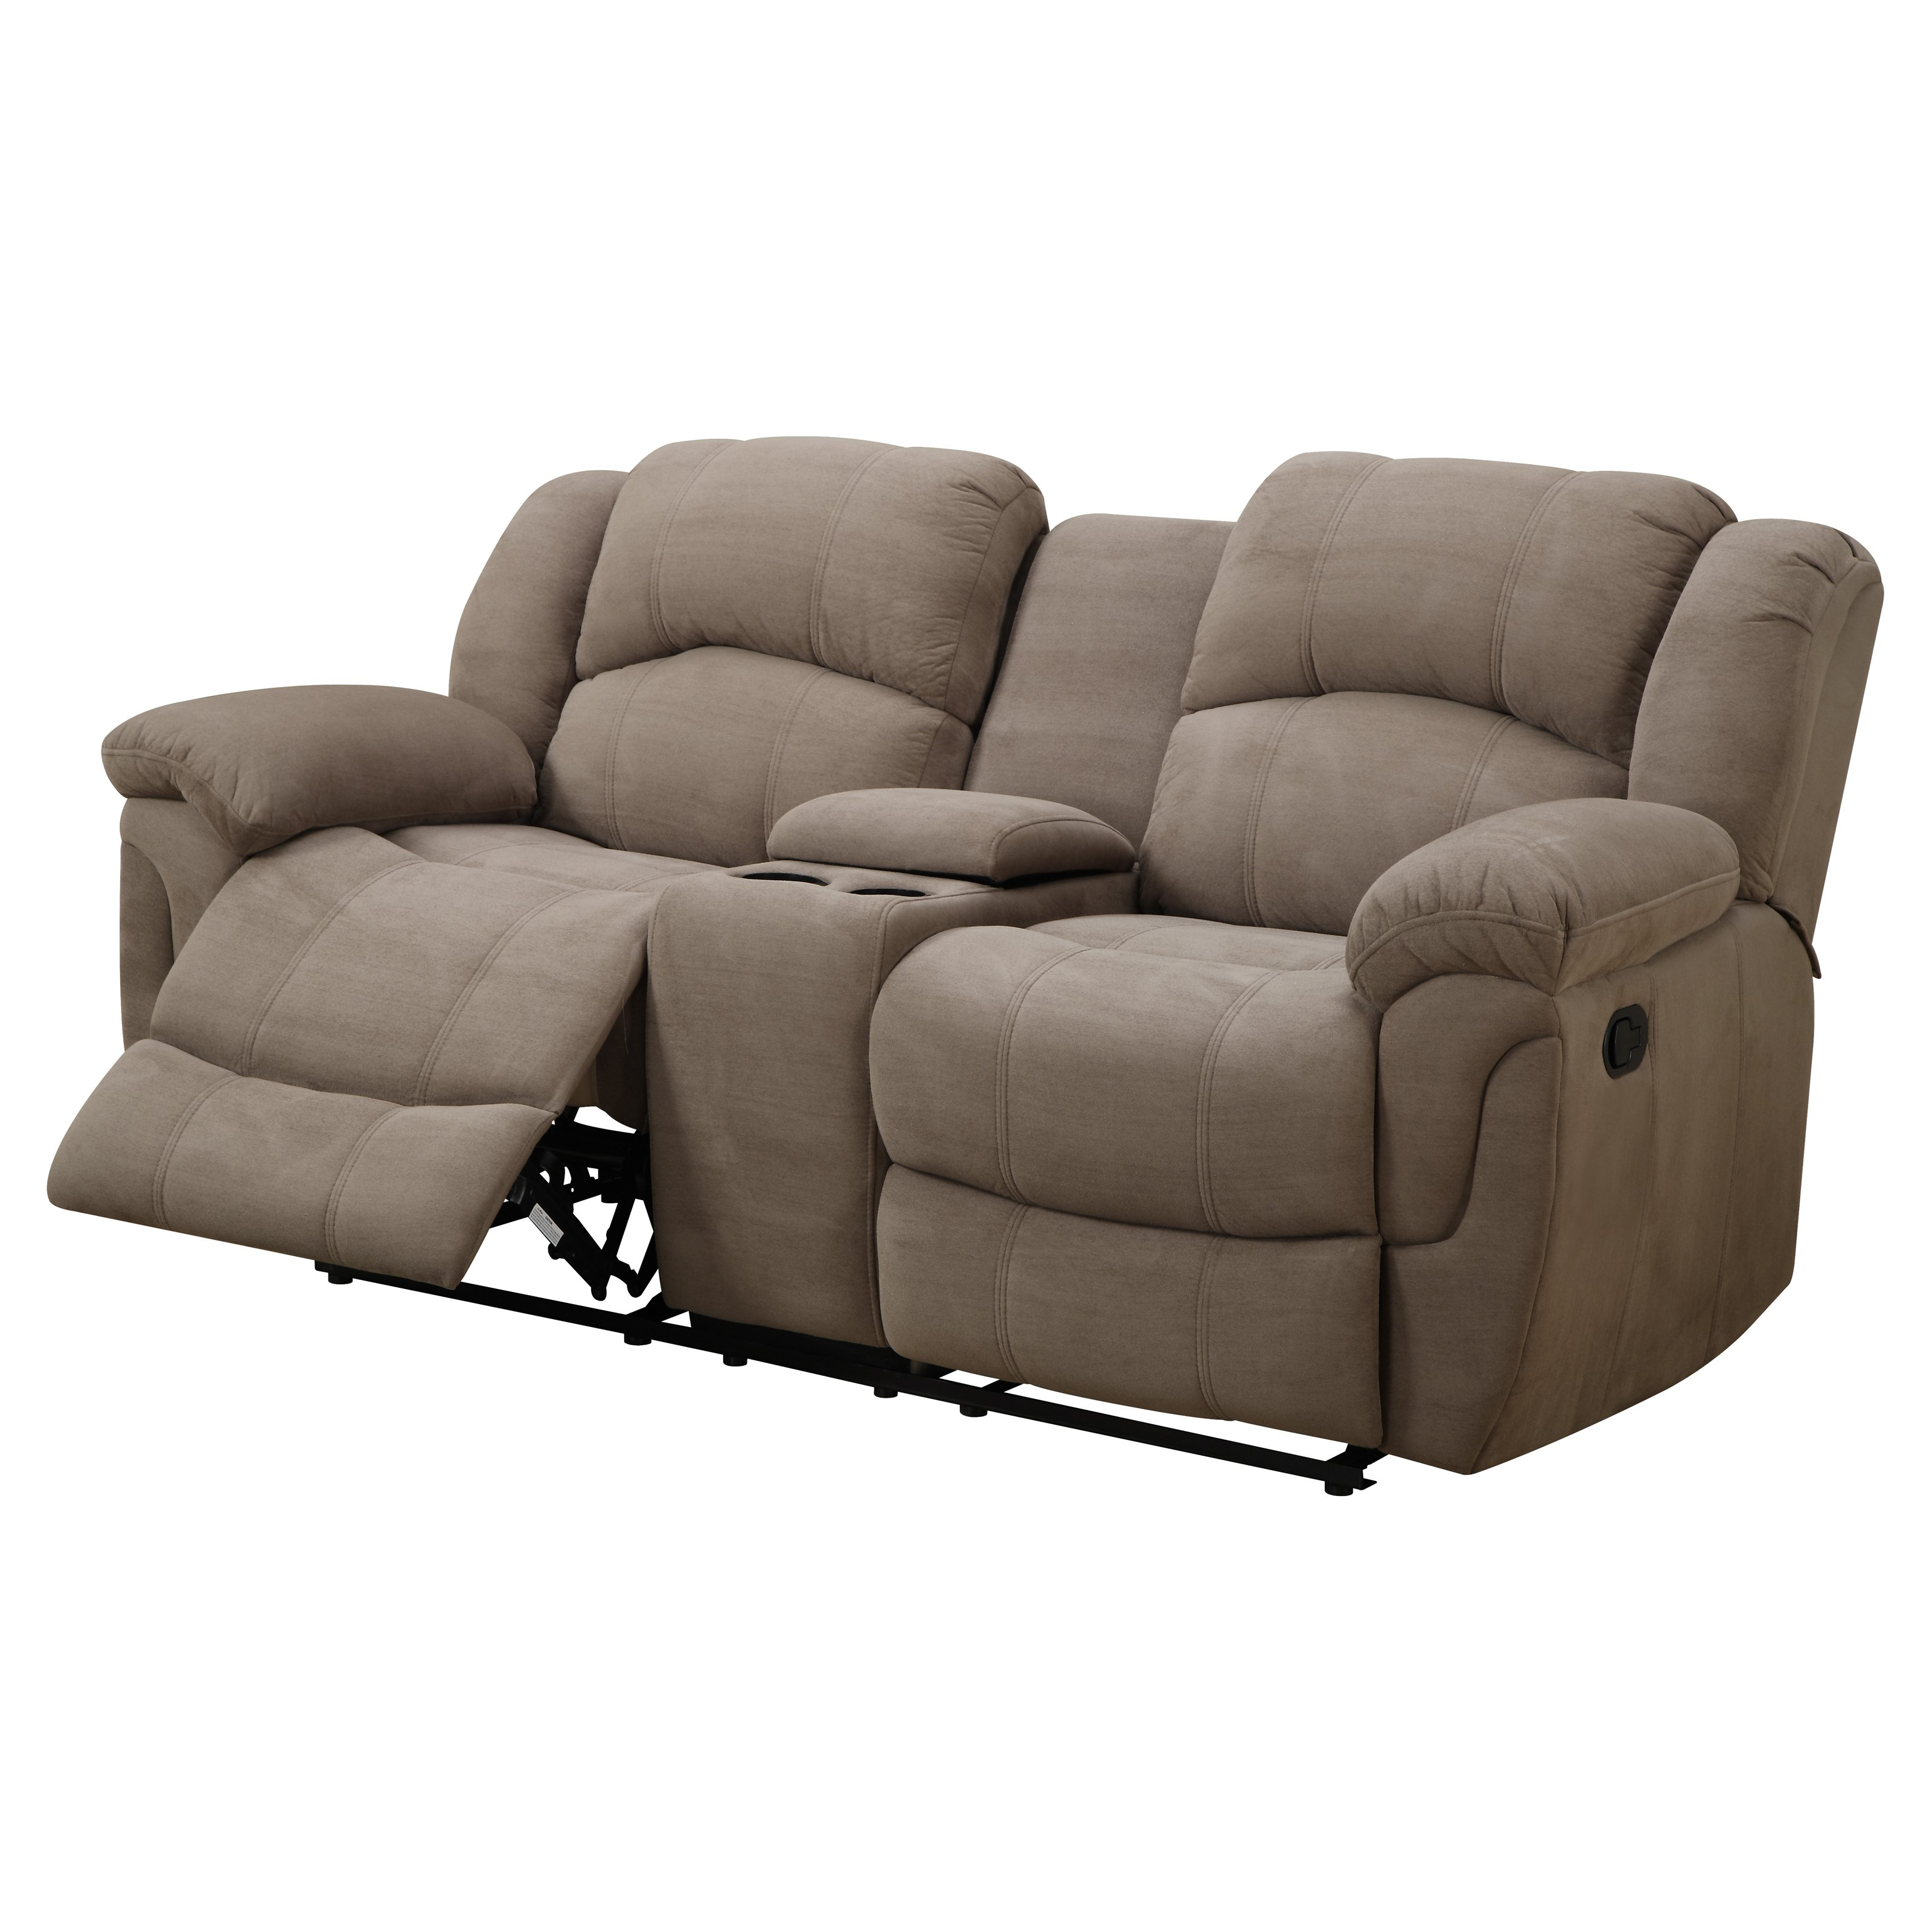 Emerald Home Hadley II Motion Loveseat With Console